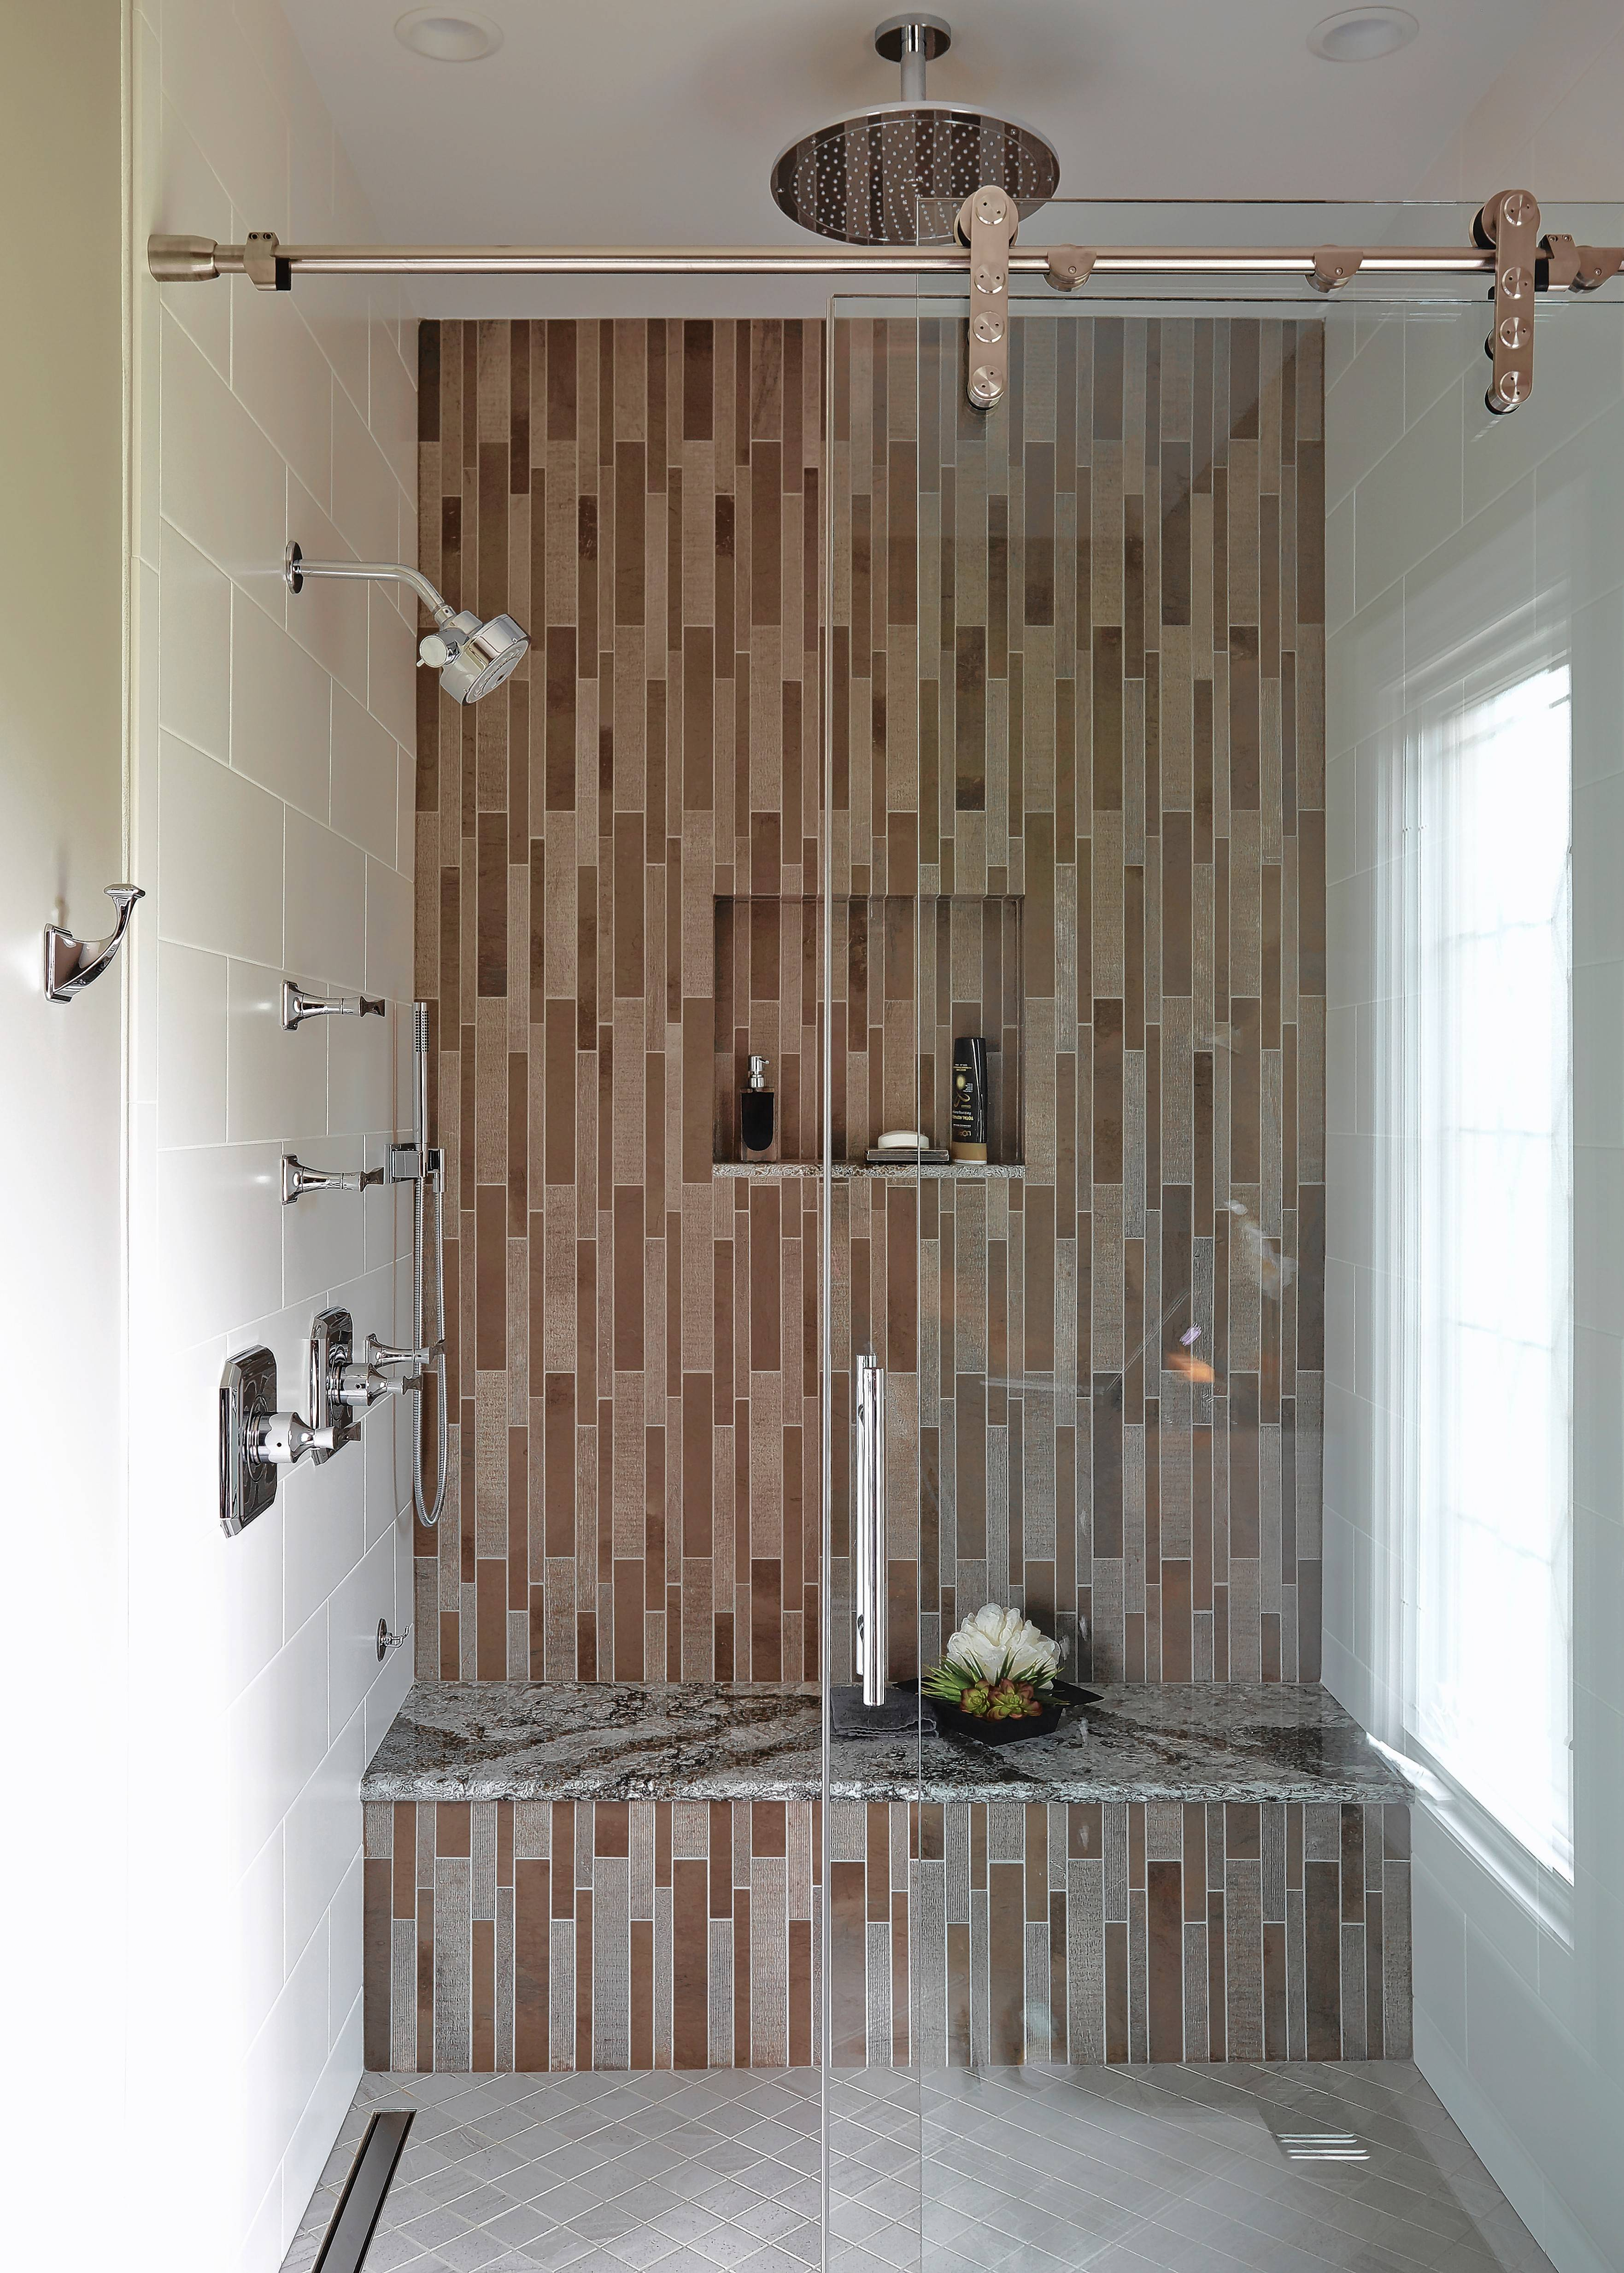 The rainfall showerhead in this walk-in shower is a favorite feature of homeowner Bill Frey.